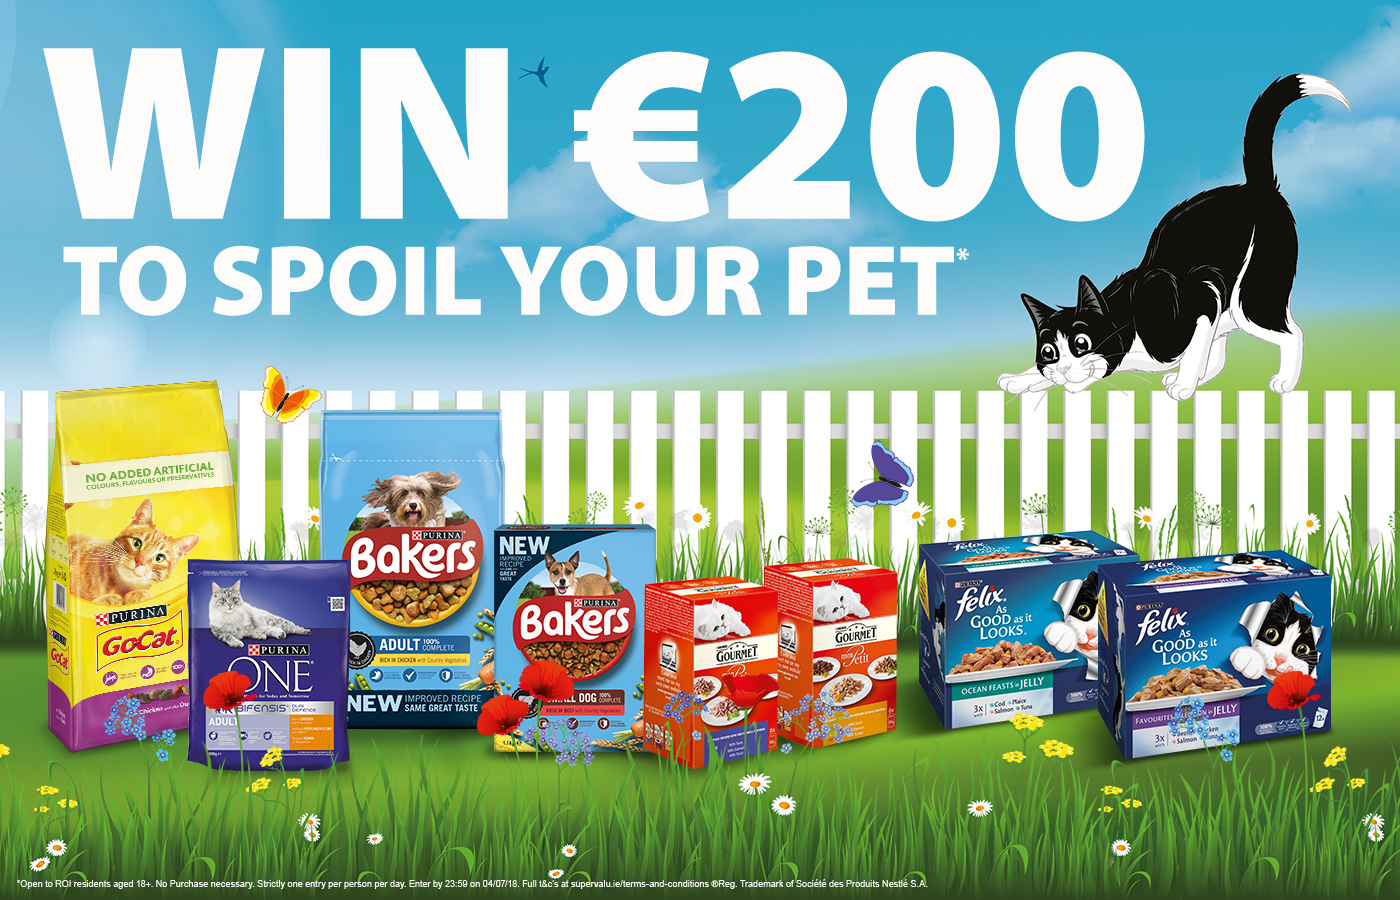 Win a €200 to spoil your pet with Purina